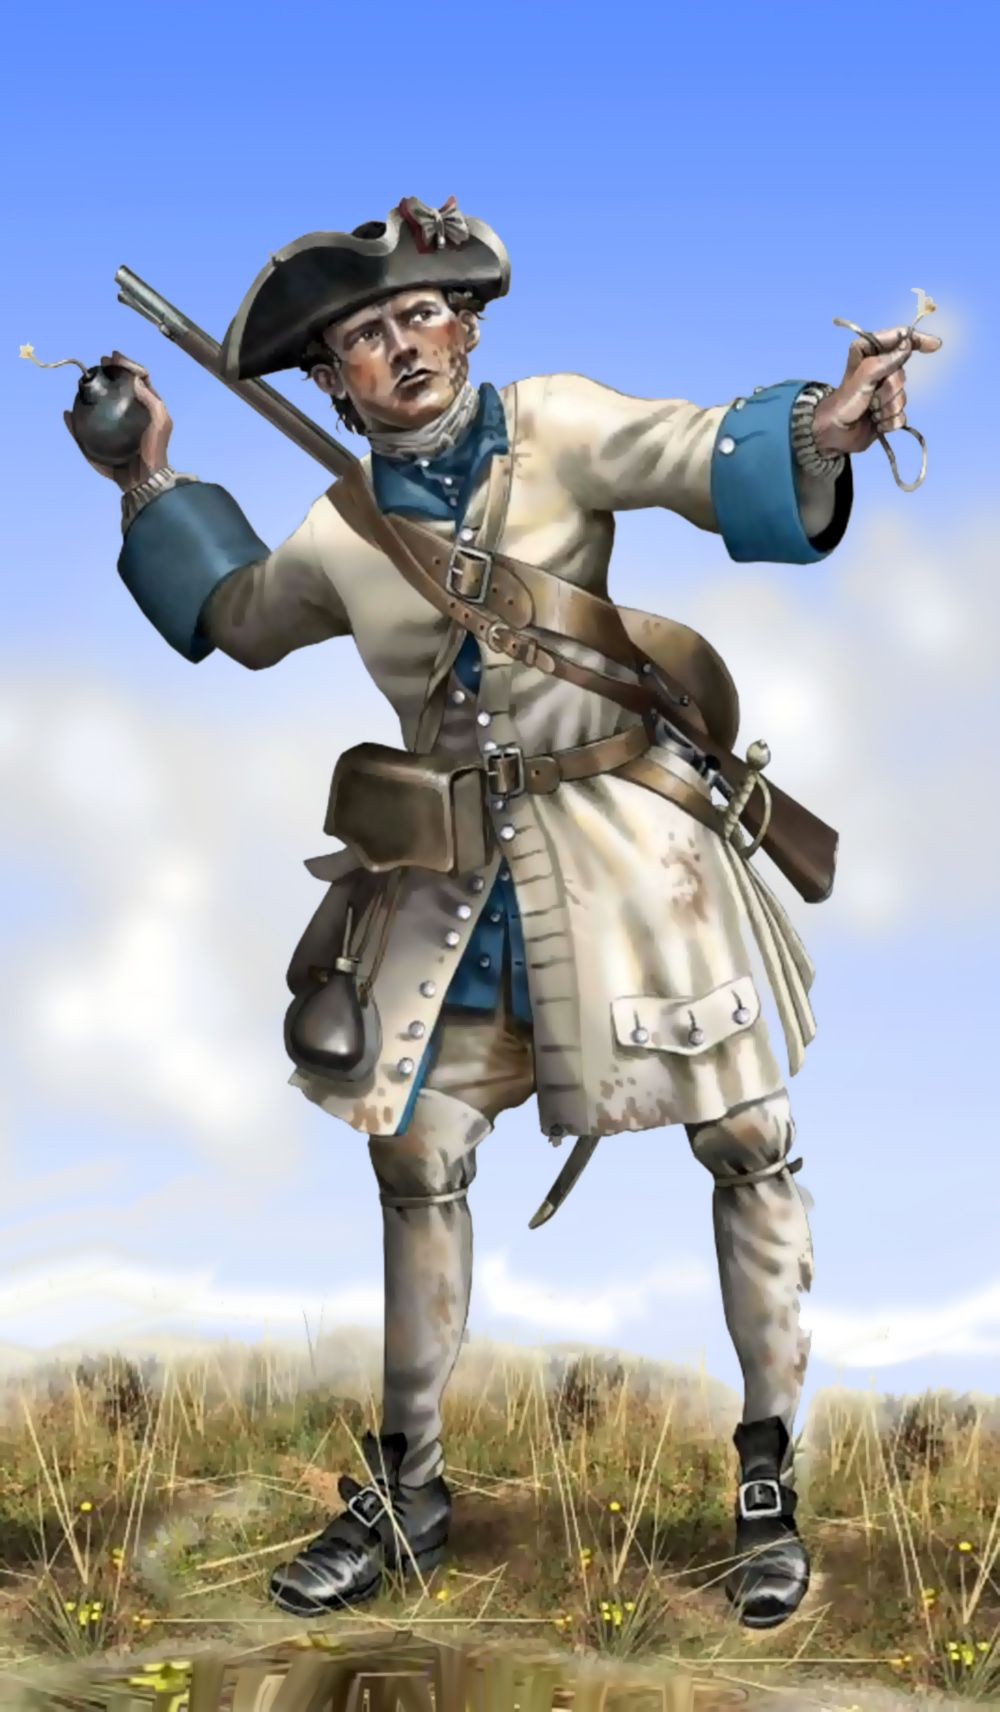 French grenadier throwing a grenade, Seven Years War, by (artist unknown). Help eliminate poor pinning! If you know the artist and can supply a link, please update this pin. Thank you!